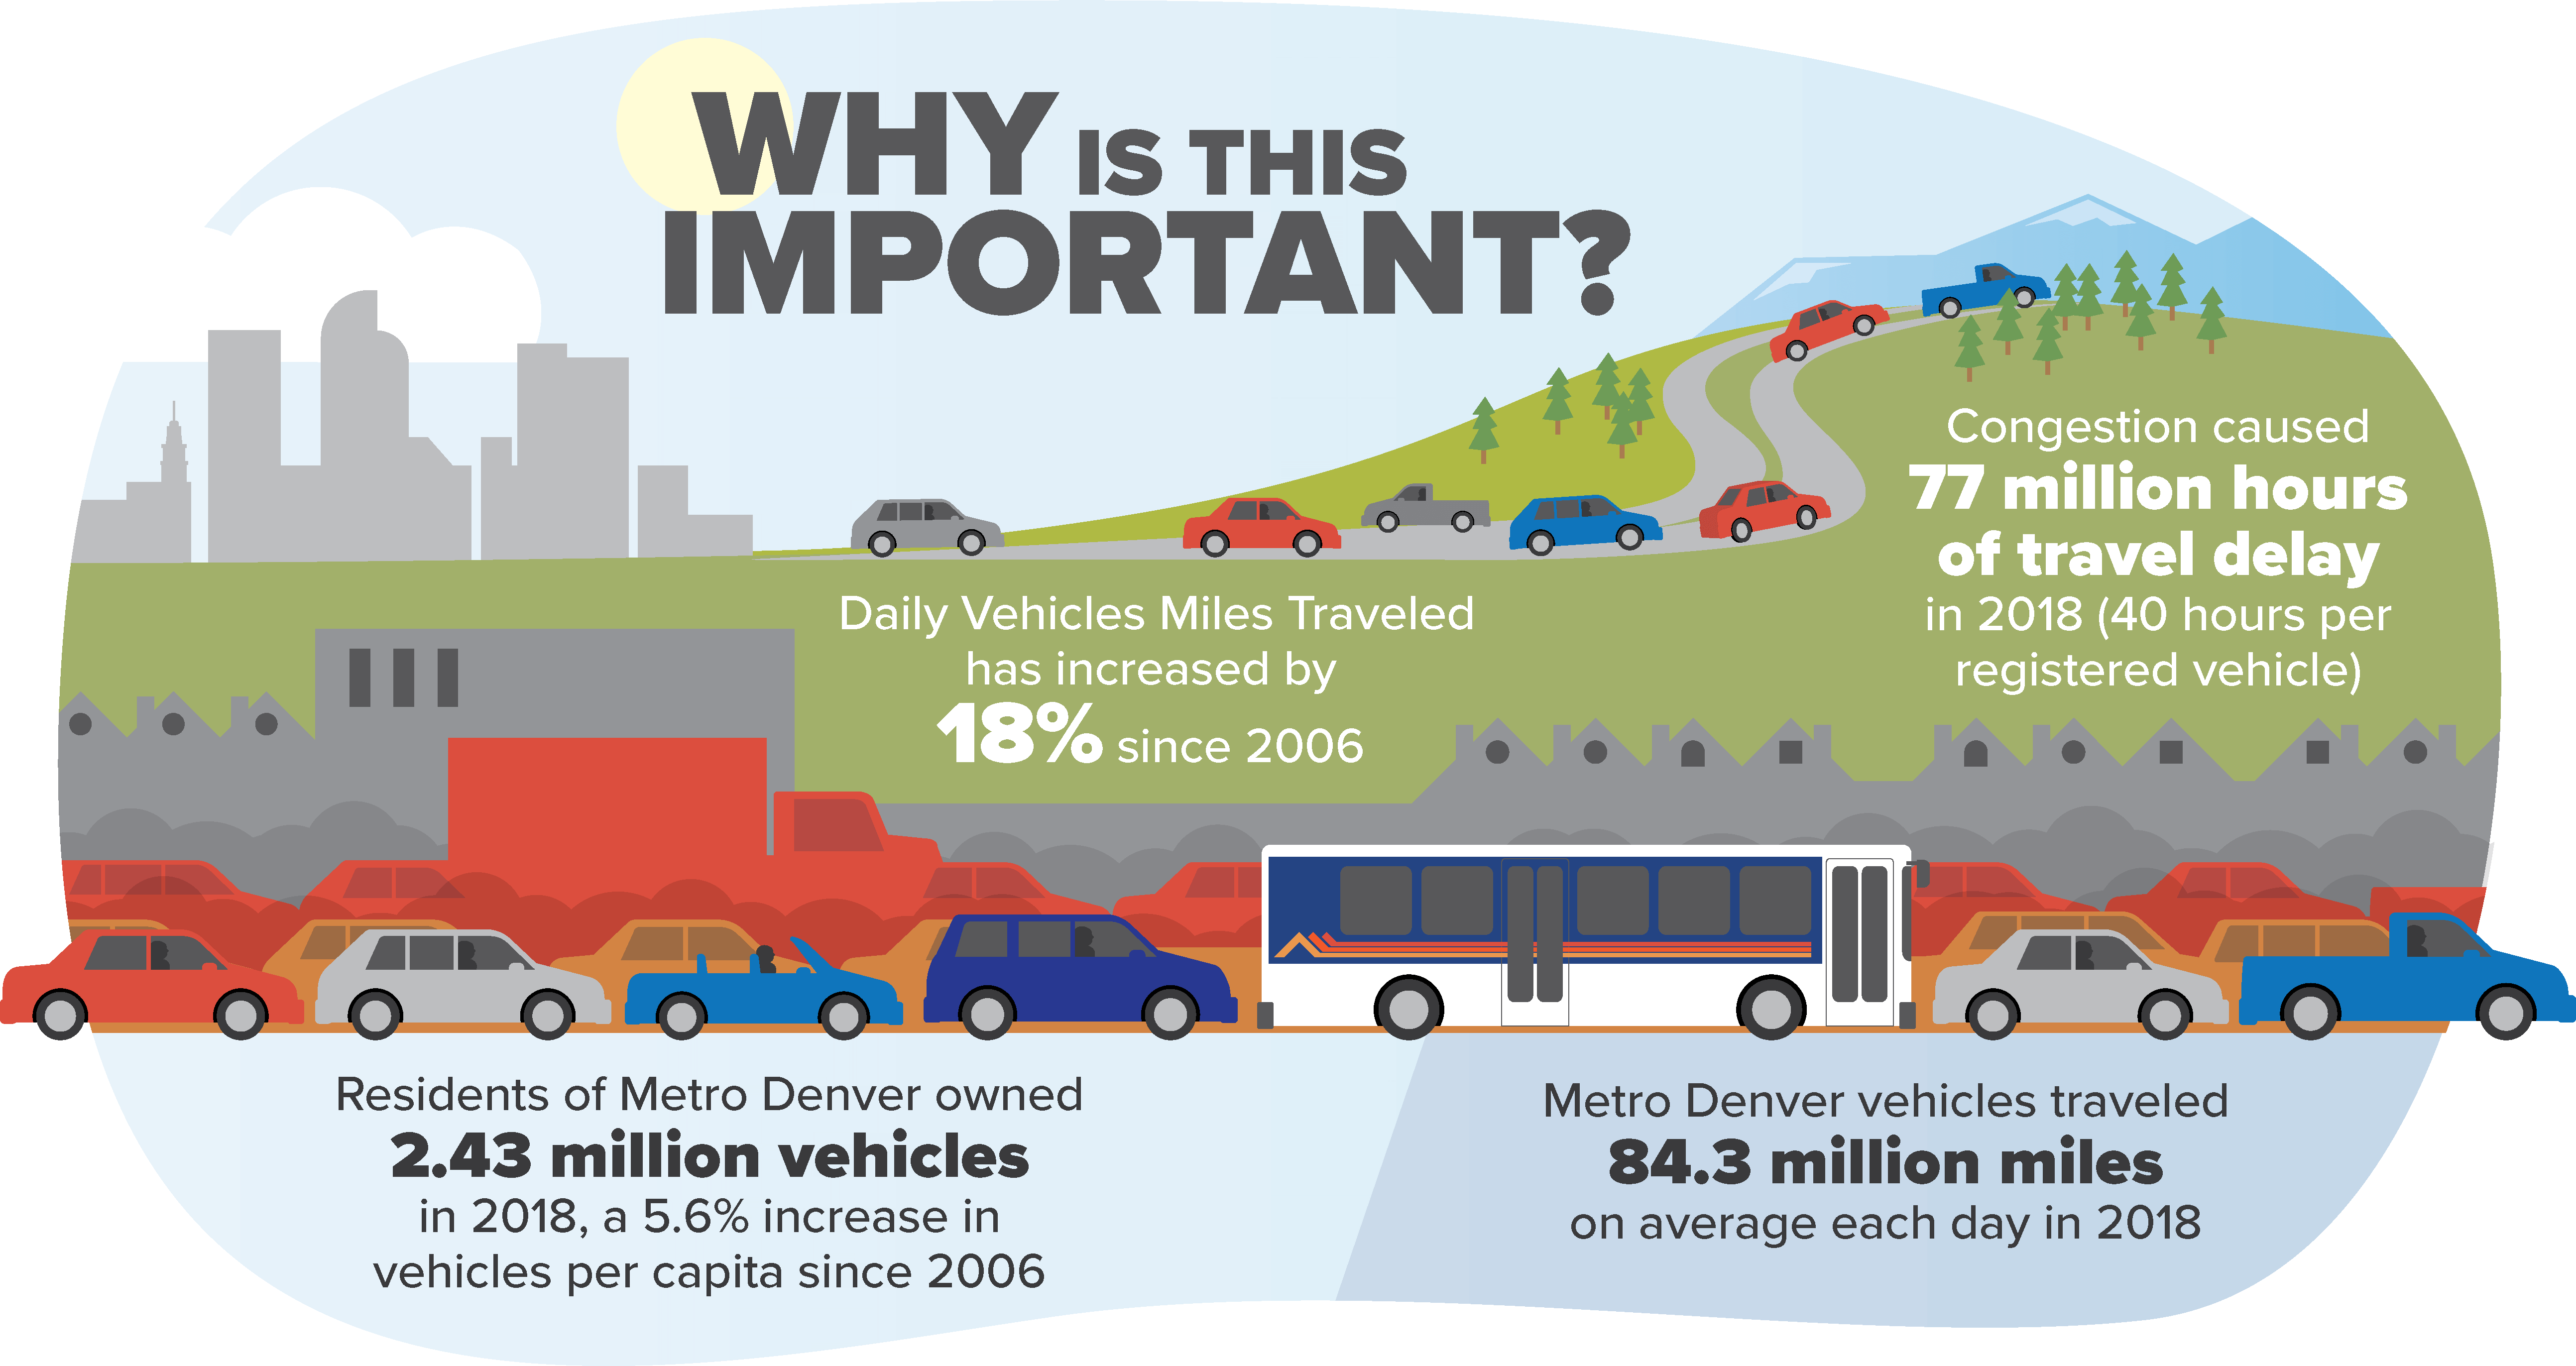 Infographic: Why is this important? Daily vehicles miles traveled increased 18% since 2006. Congestion caused 77 millions hours of travel delay in 2018, that's 40 hours per registered vehicle. Denver residents owned over 2.43 million vehicles in 2018, a 5.6% increase per capita since 2006. In  2017, there were 83.4 million daily vehicle miles traveled in the Denver metro region.